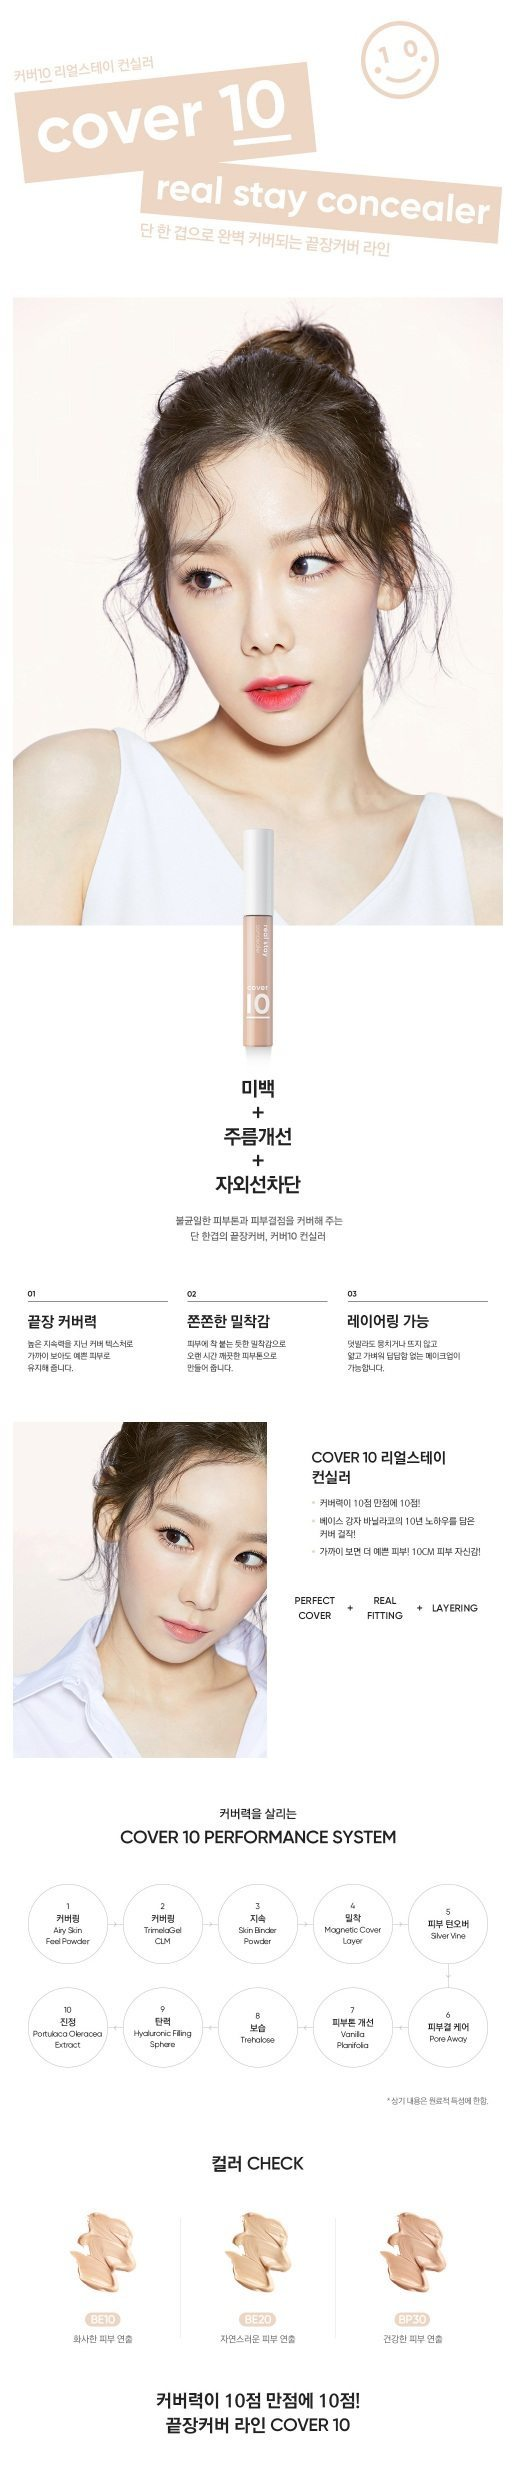 Banila Co Cover 10 Real Stay Concealer korean cosmetic skincare product online shop malaysia macau singapore1